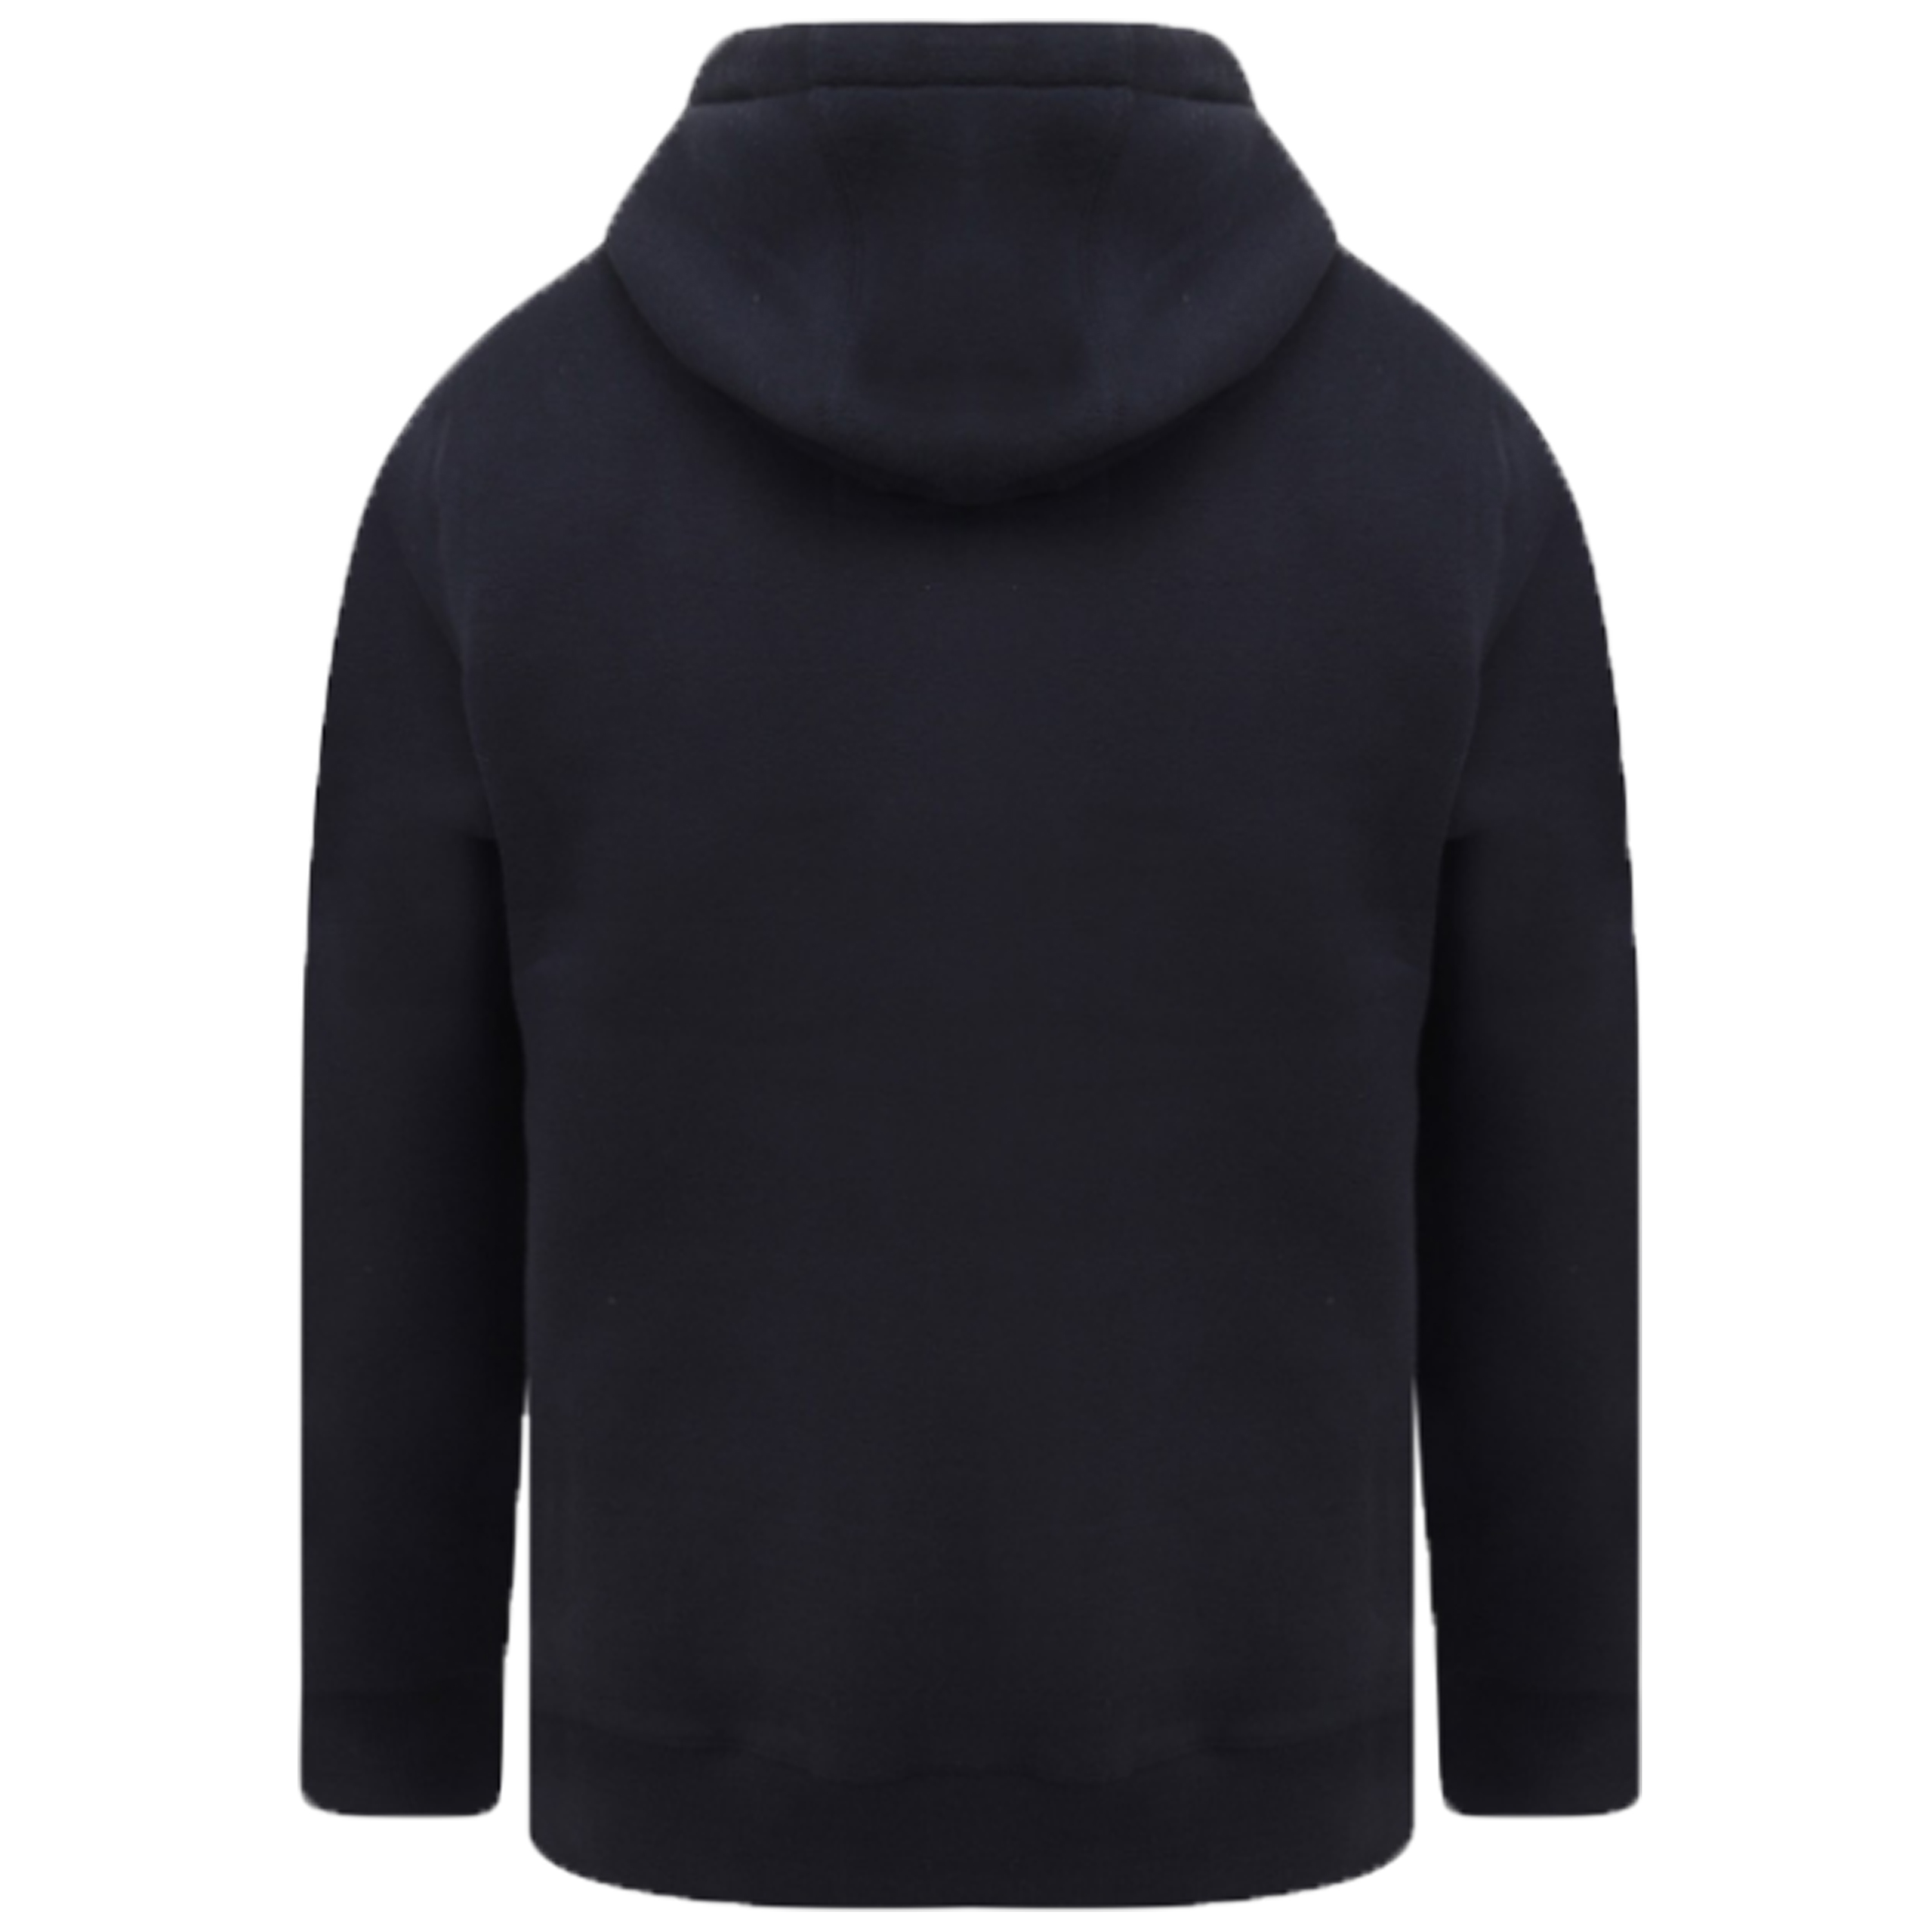 Mens-Sweatshirt-Tokyo-Laundry-Sherpa-Fleece-Hooded-Top-Pullover-Winter-Fashion thumbnail 11